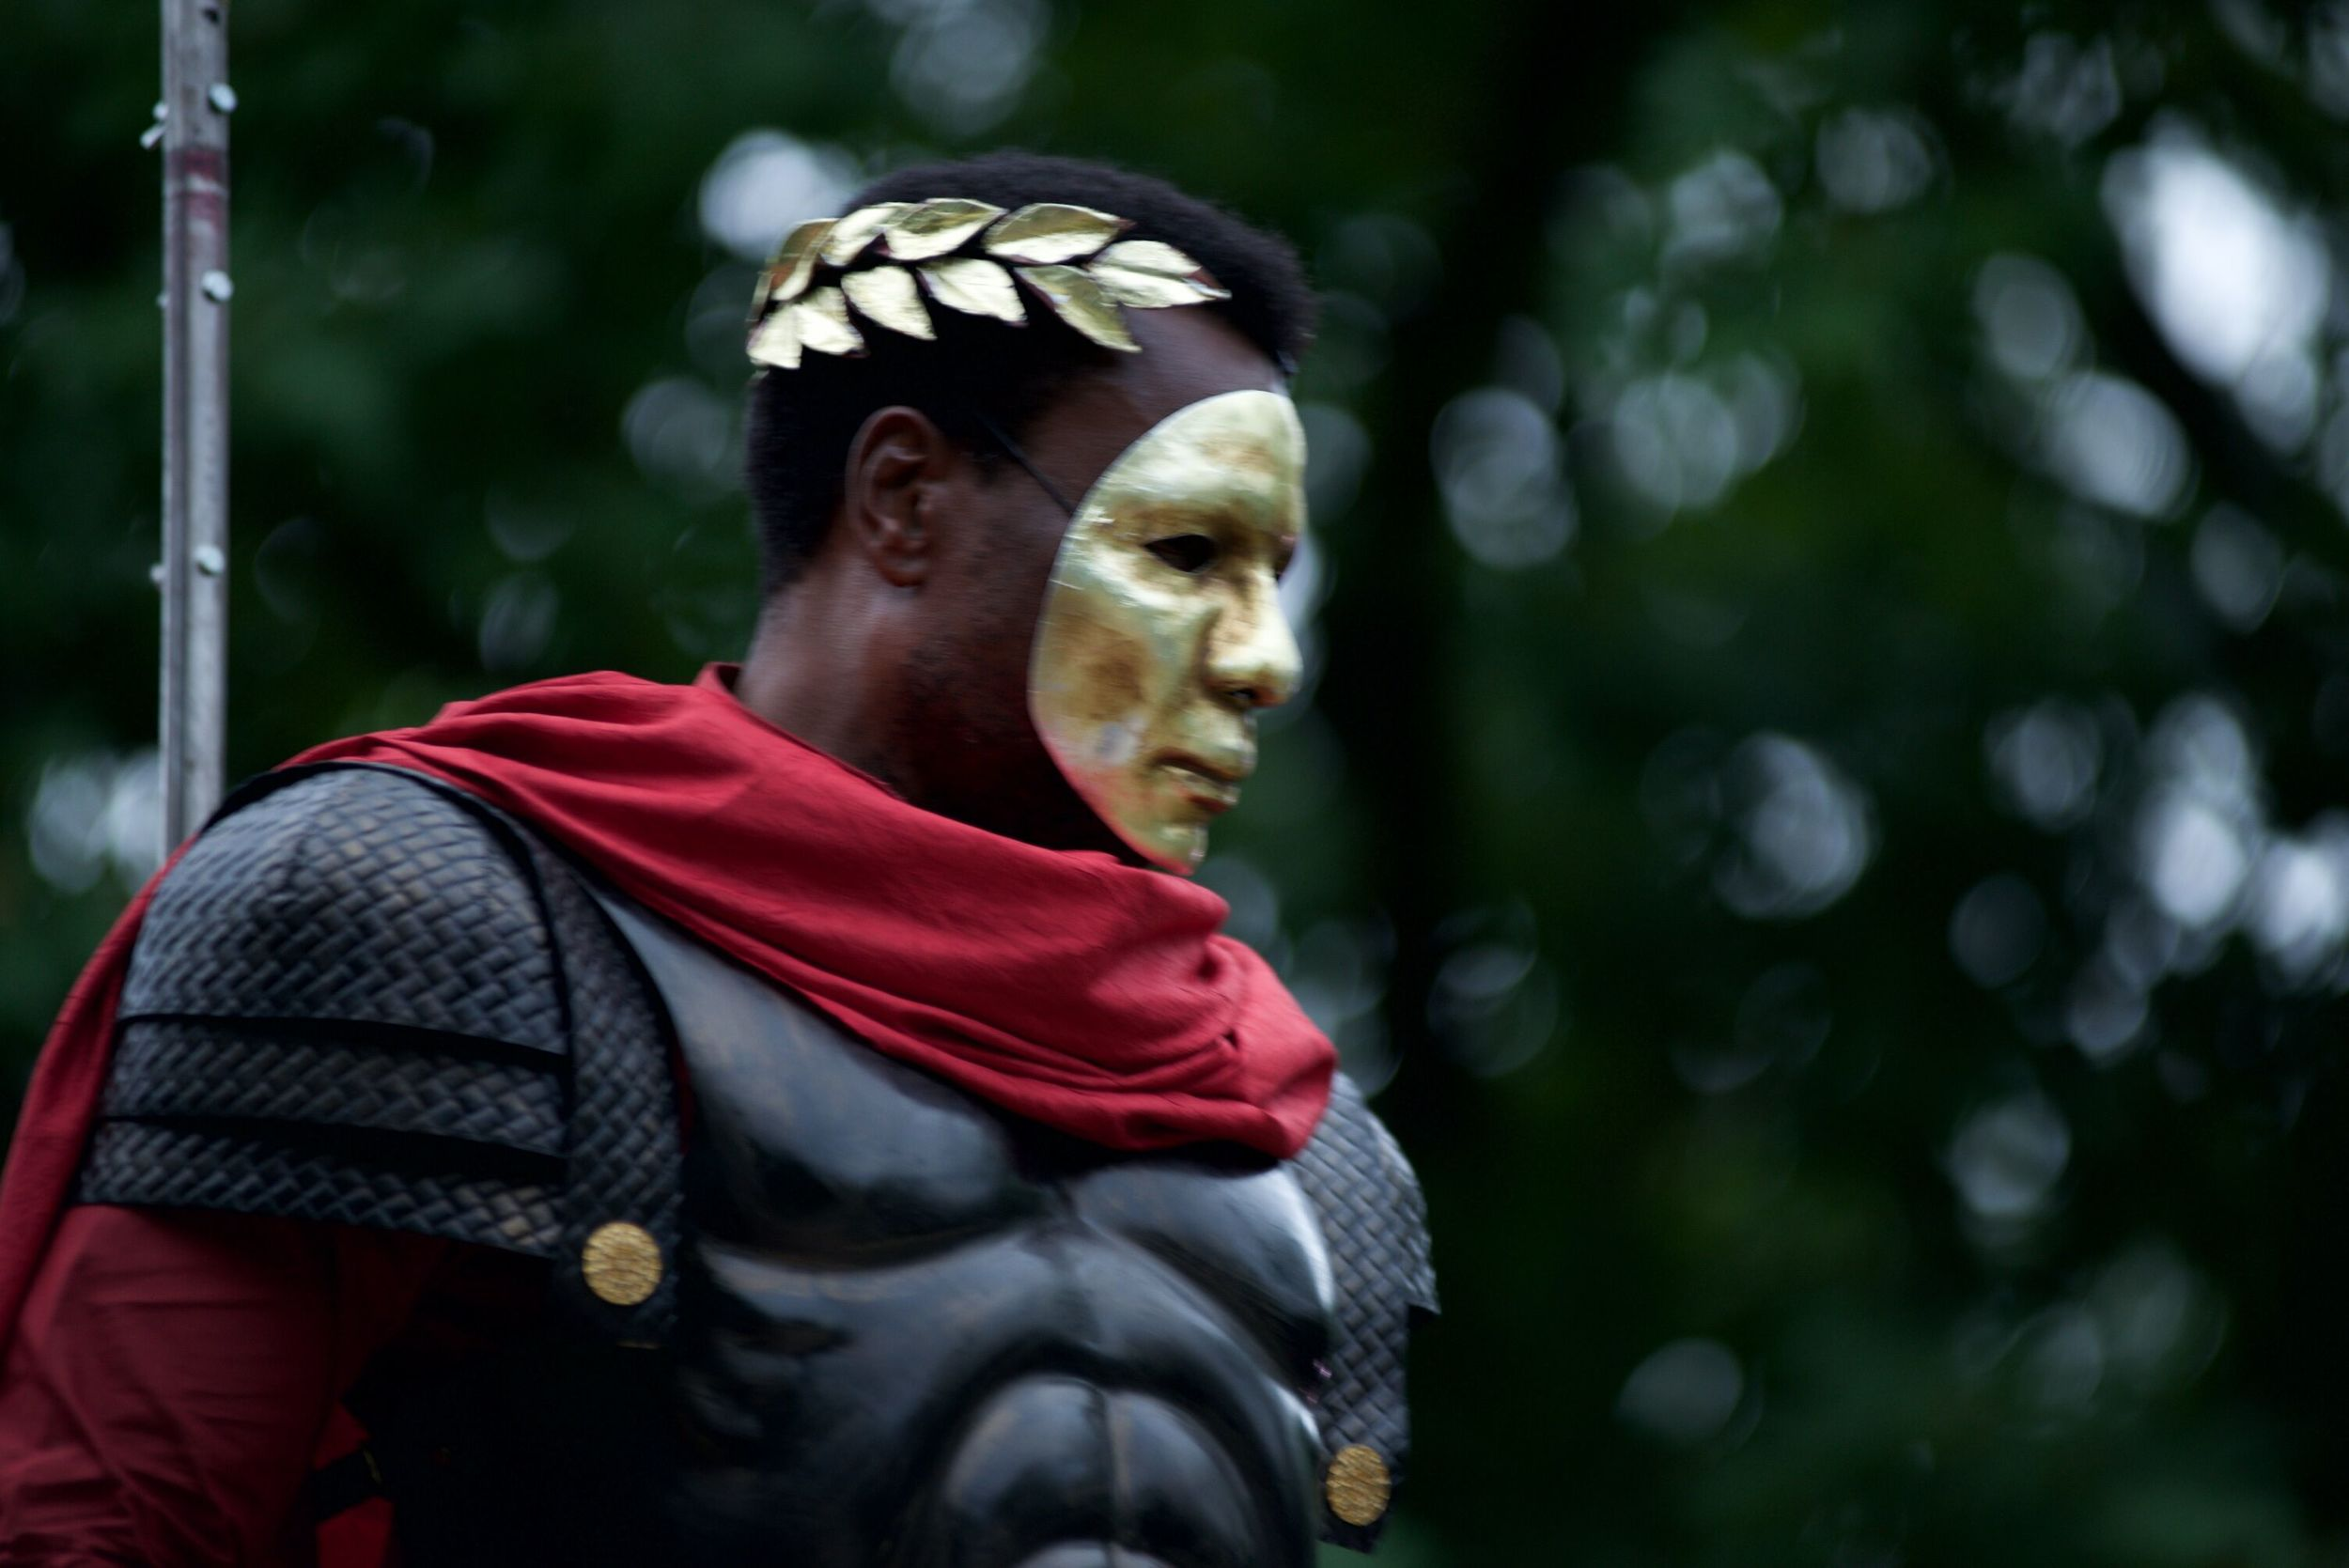 Julius Caesar.   Canadian Stage Shakespeare in High Park 2015. Direction: Estelle Shook. Costume Design: Michelle Tracey. Photo by: Lyon Smith